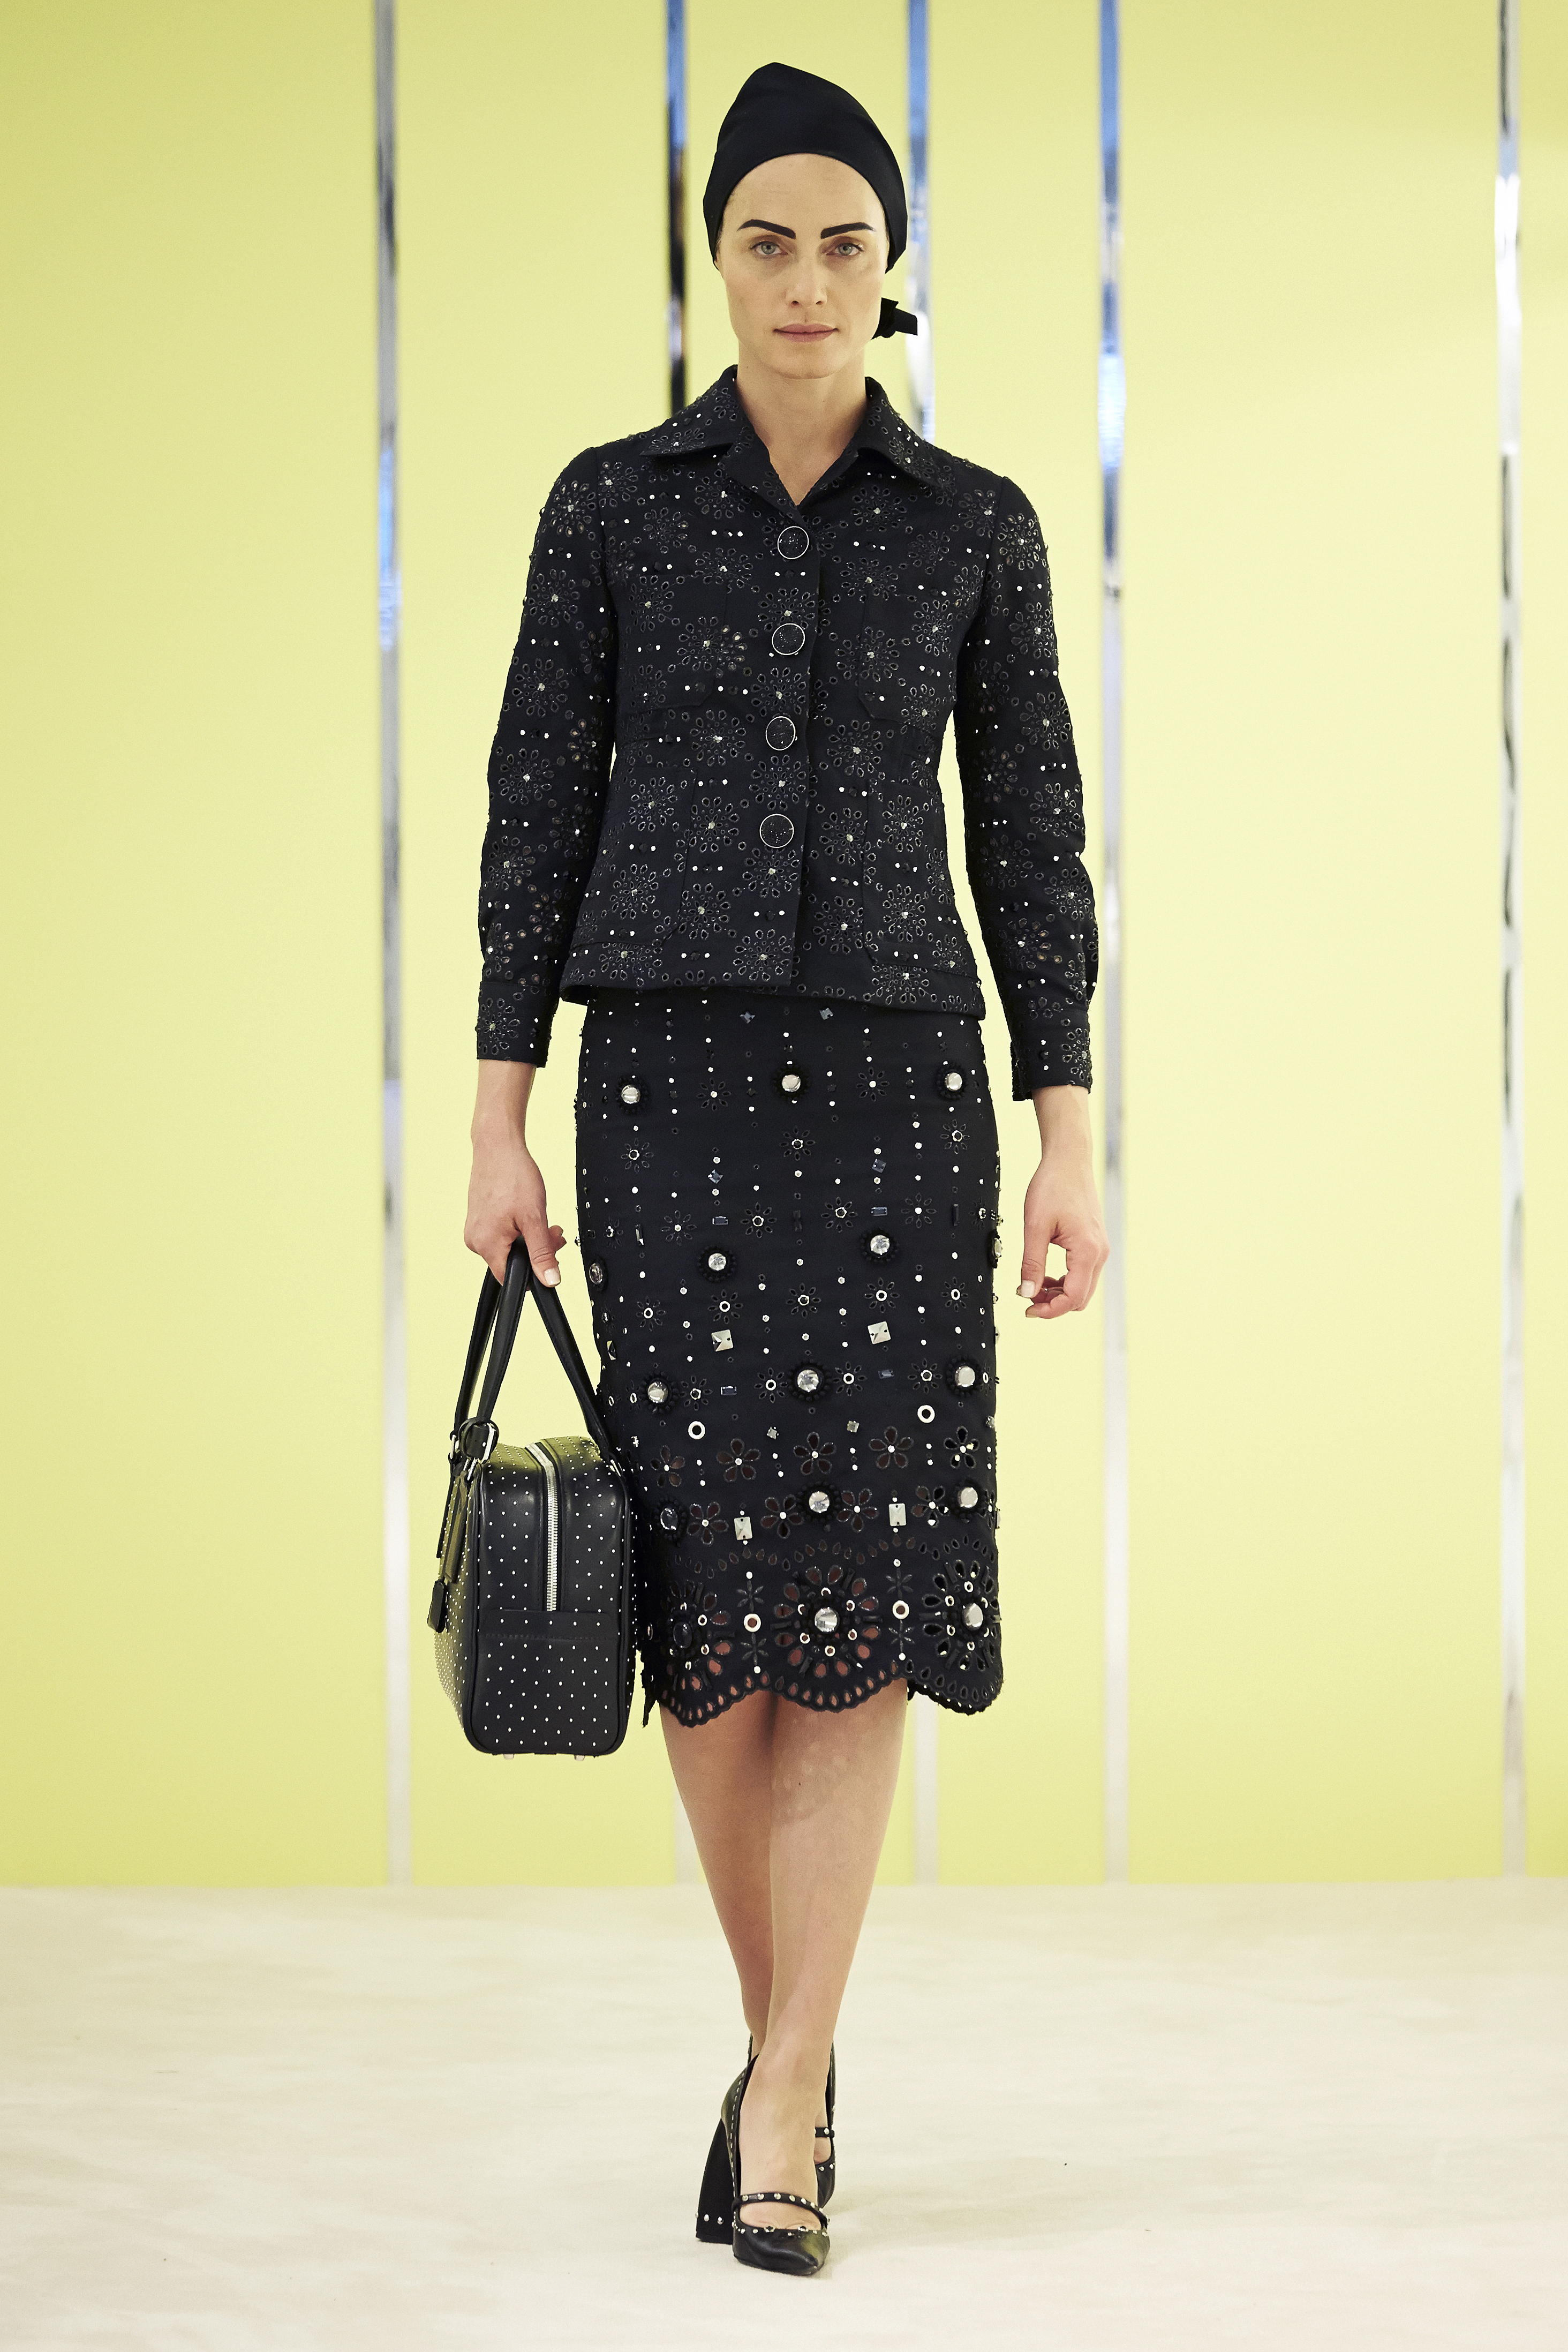 MARC JACOBS RESORT 2016 COLLECTION NEW YORK